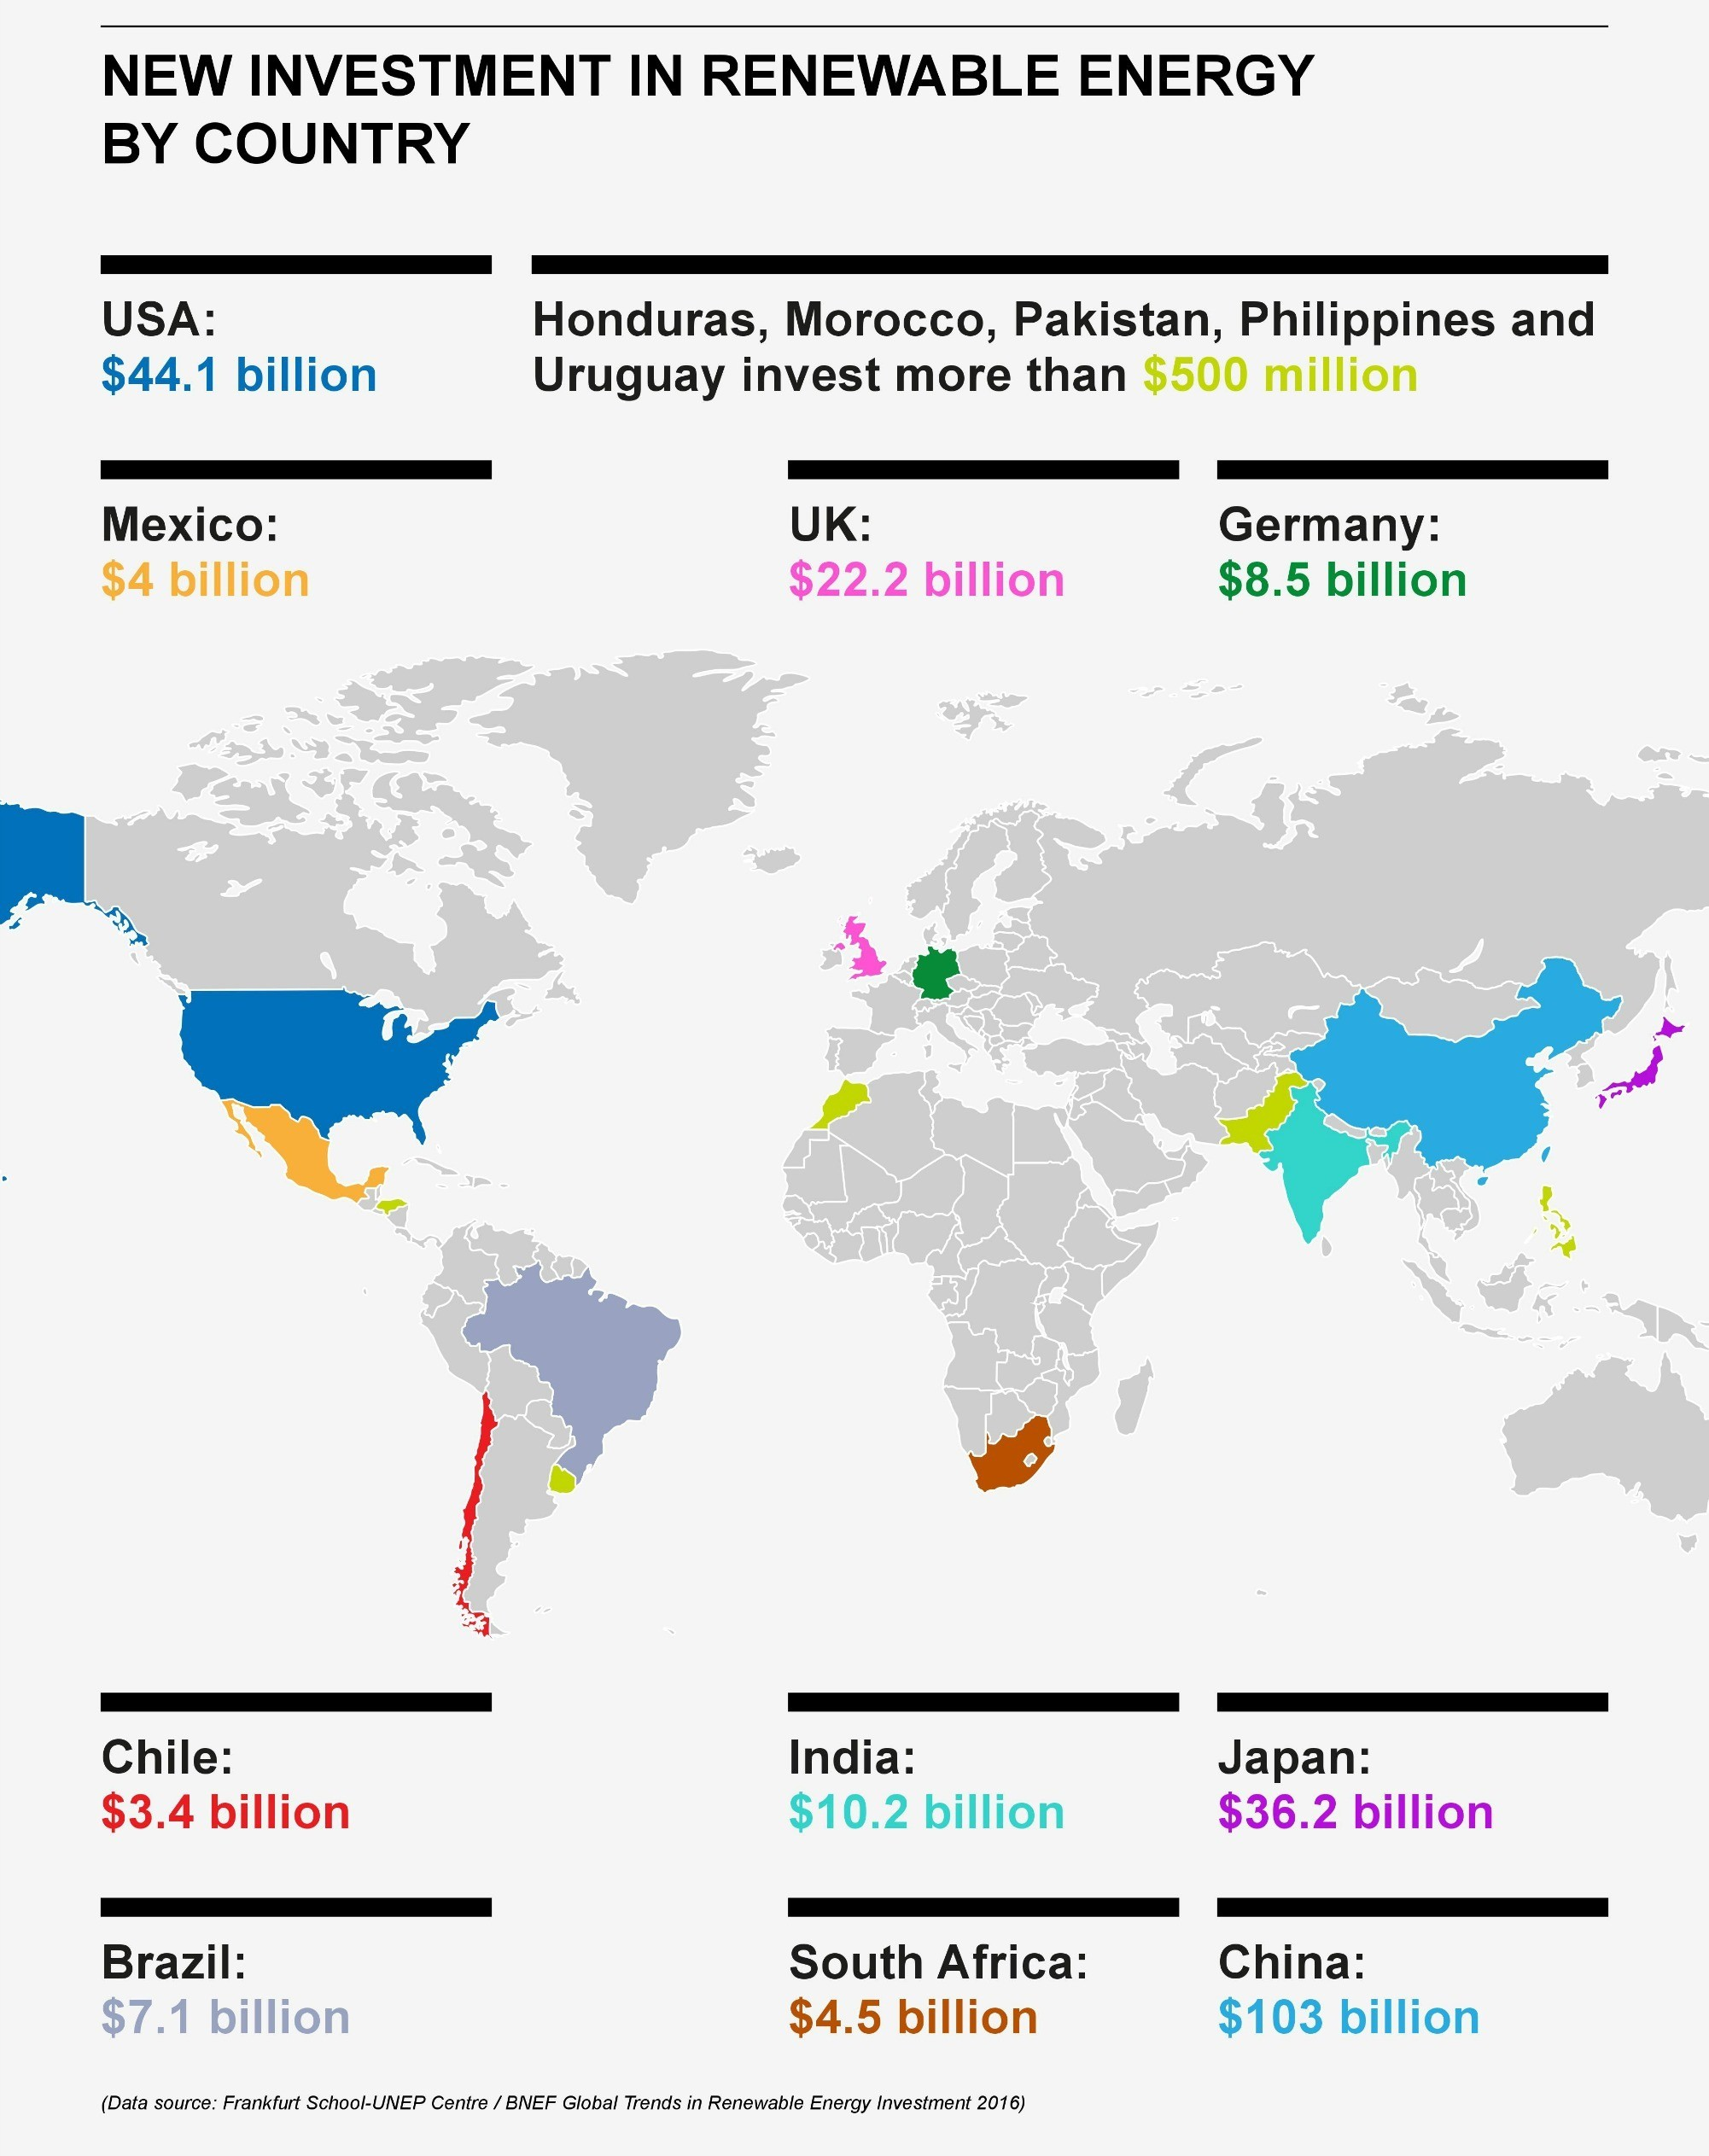 New investment in renewable energy by country